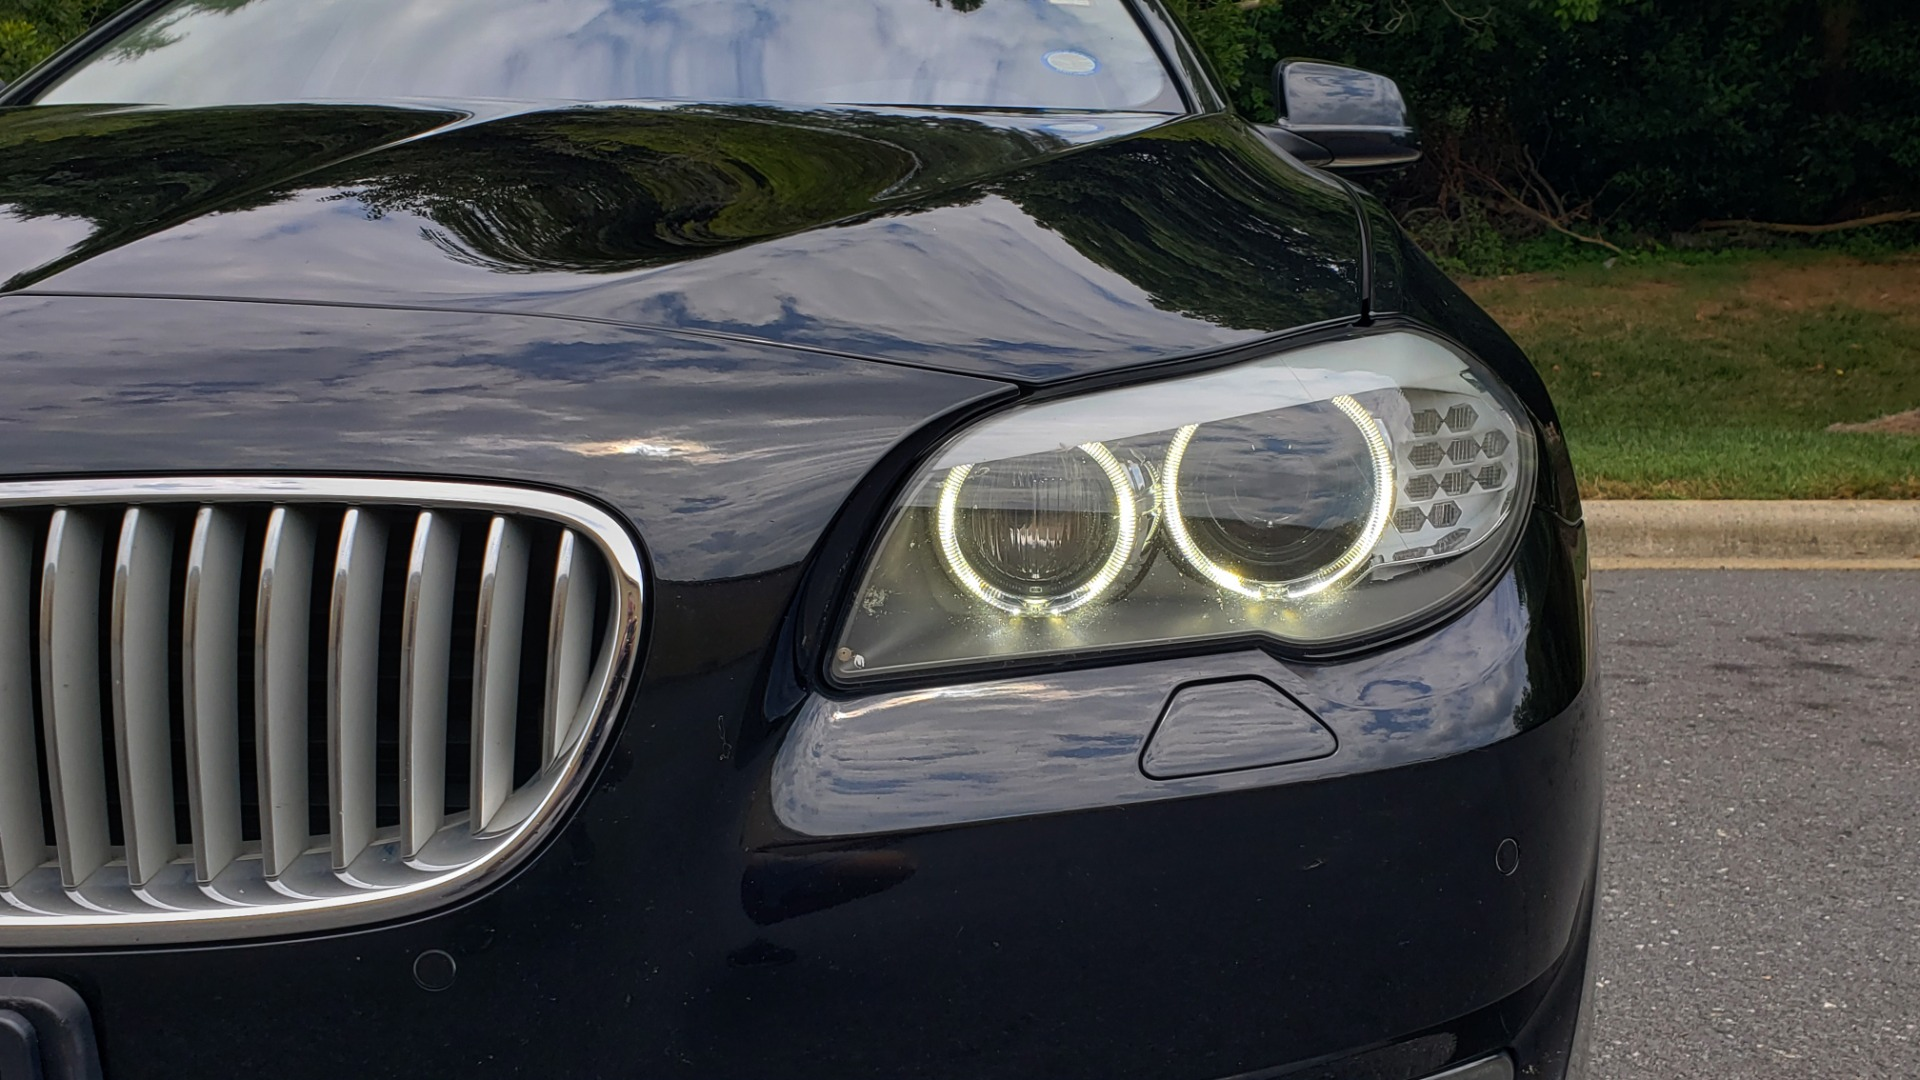 Used 2013 BMW 5 SERIES 550I XDRIVE LUX PKG / EXEC / COLD WTHR / NAV / SUNROOF / REARVIEW for sale $17,995 at Formula Imports in Charlotte NC 28227 18